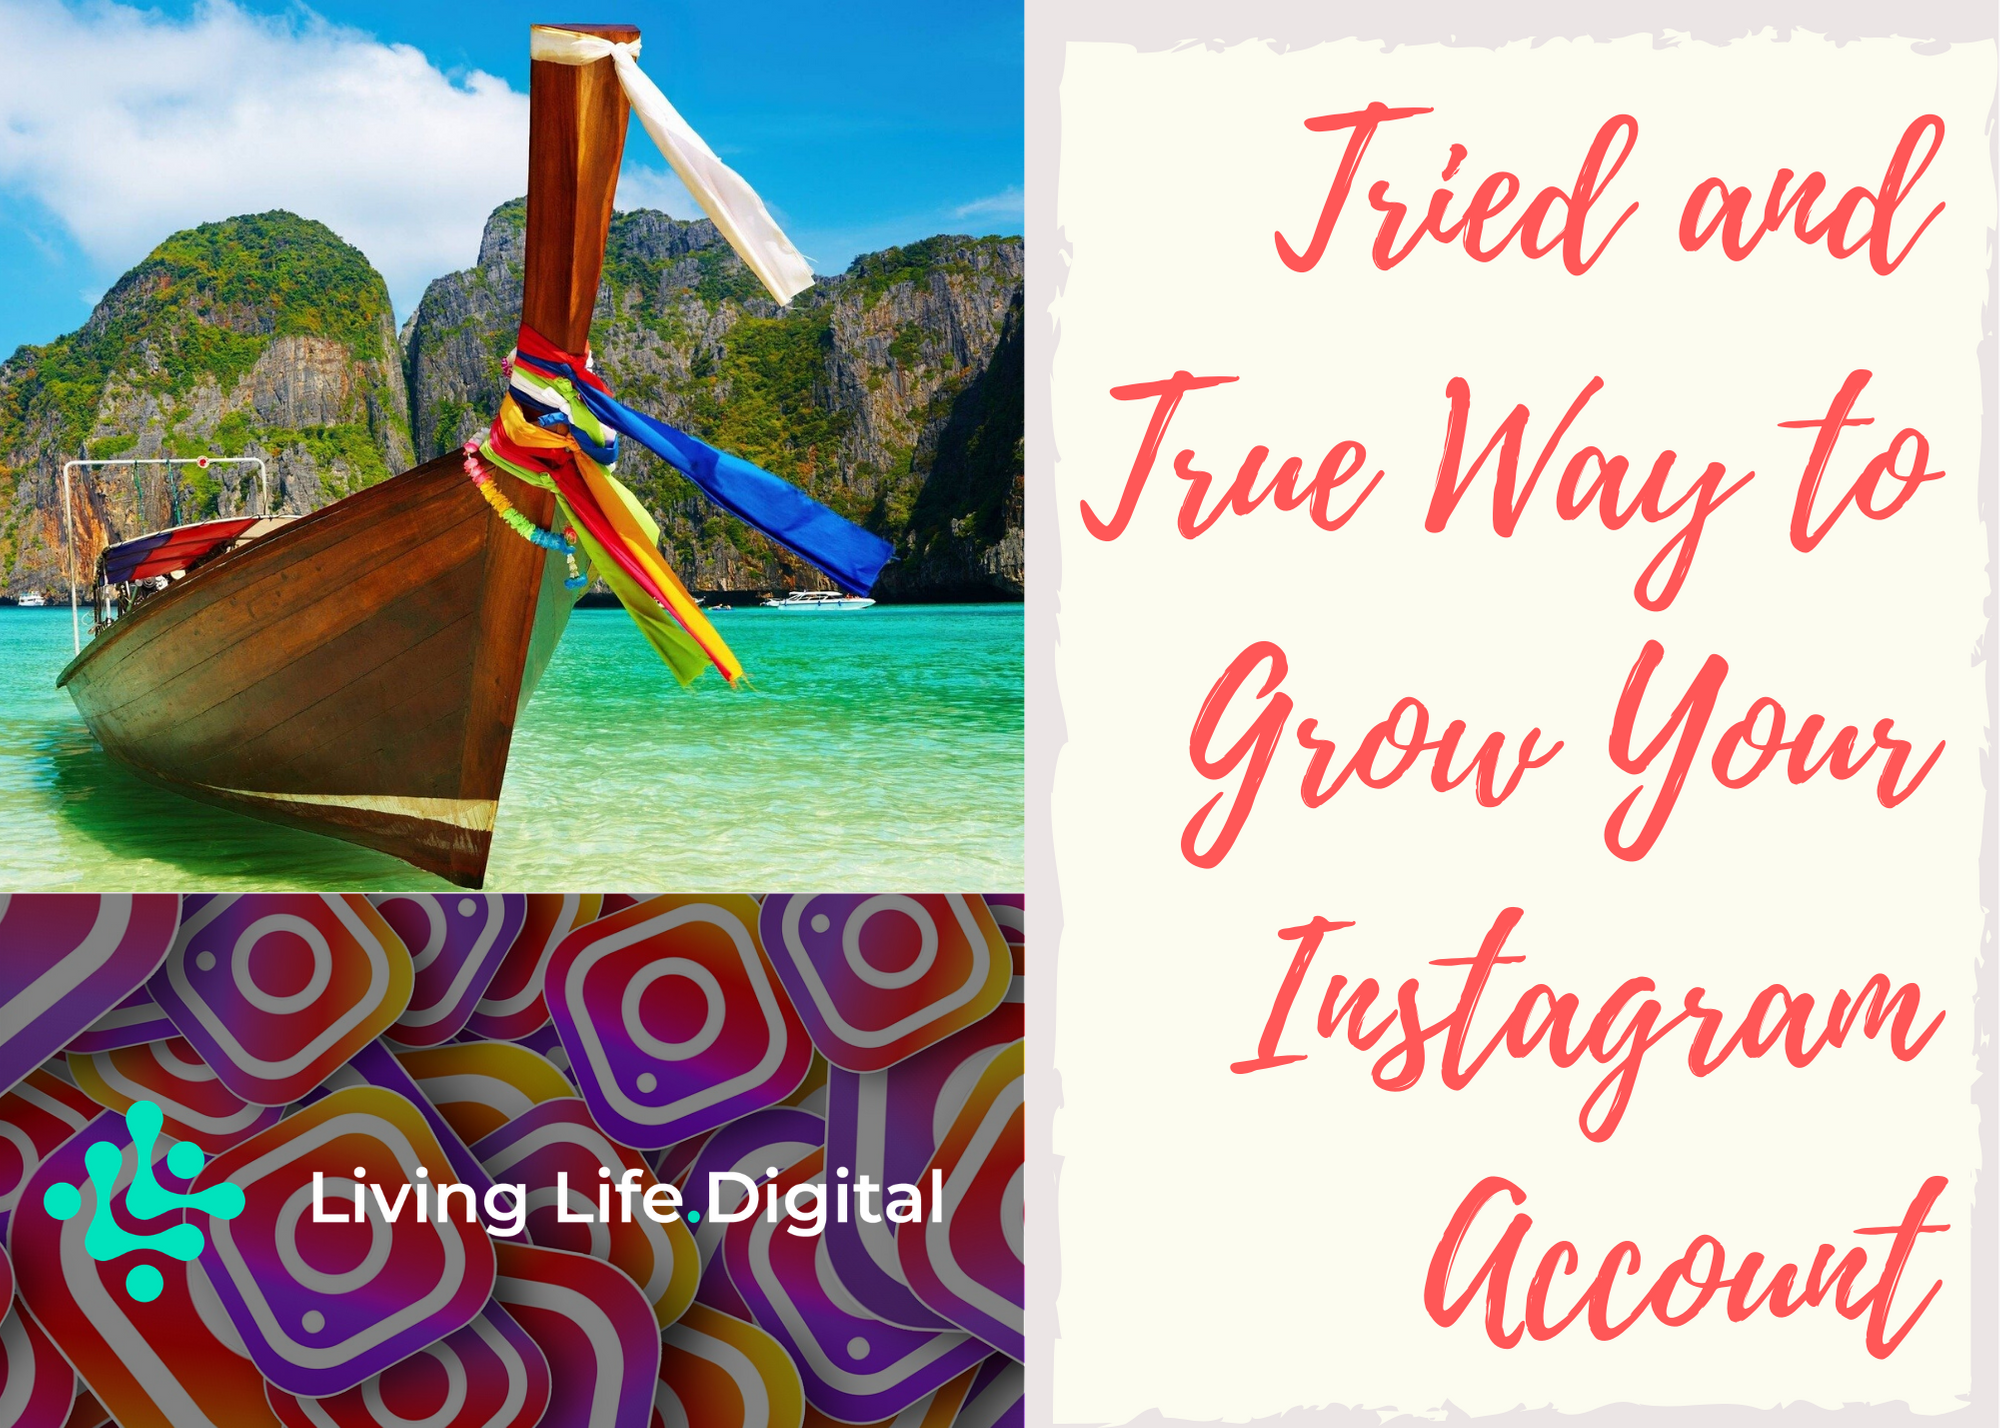 Tried and True Way to Grow Your Instagram Account